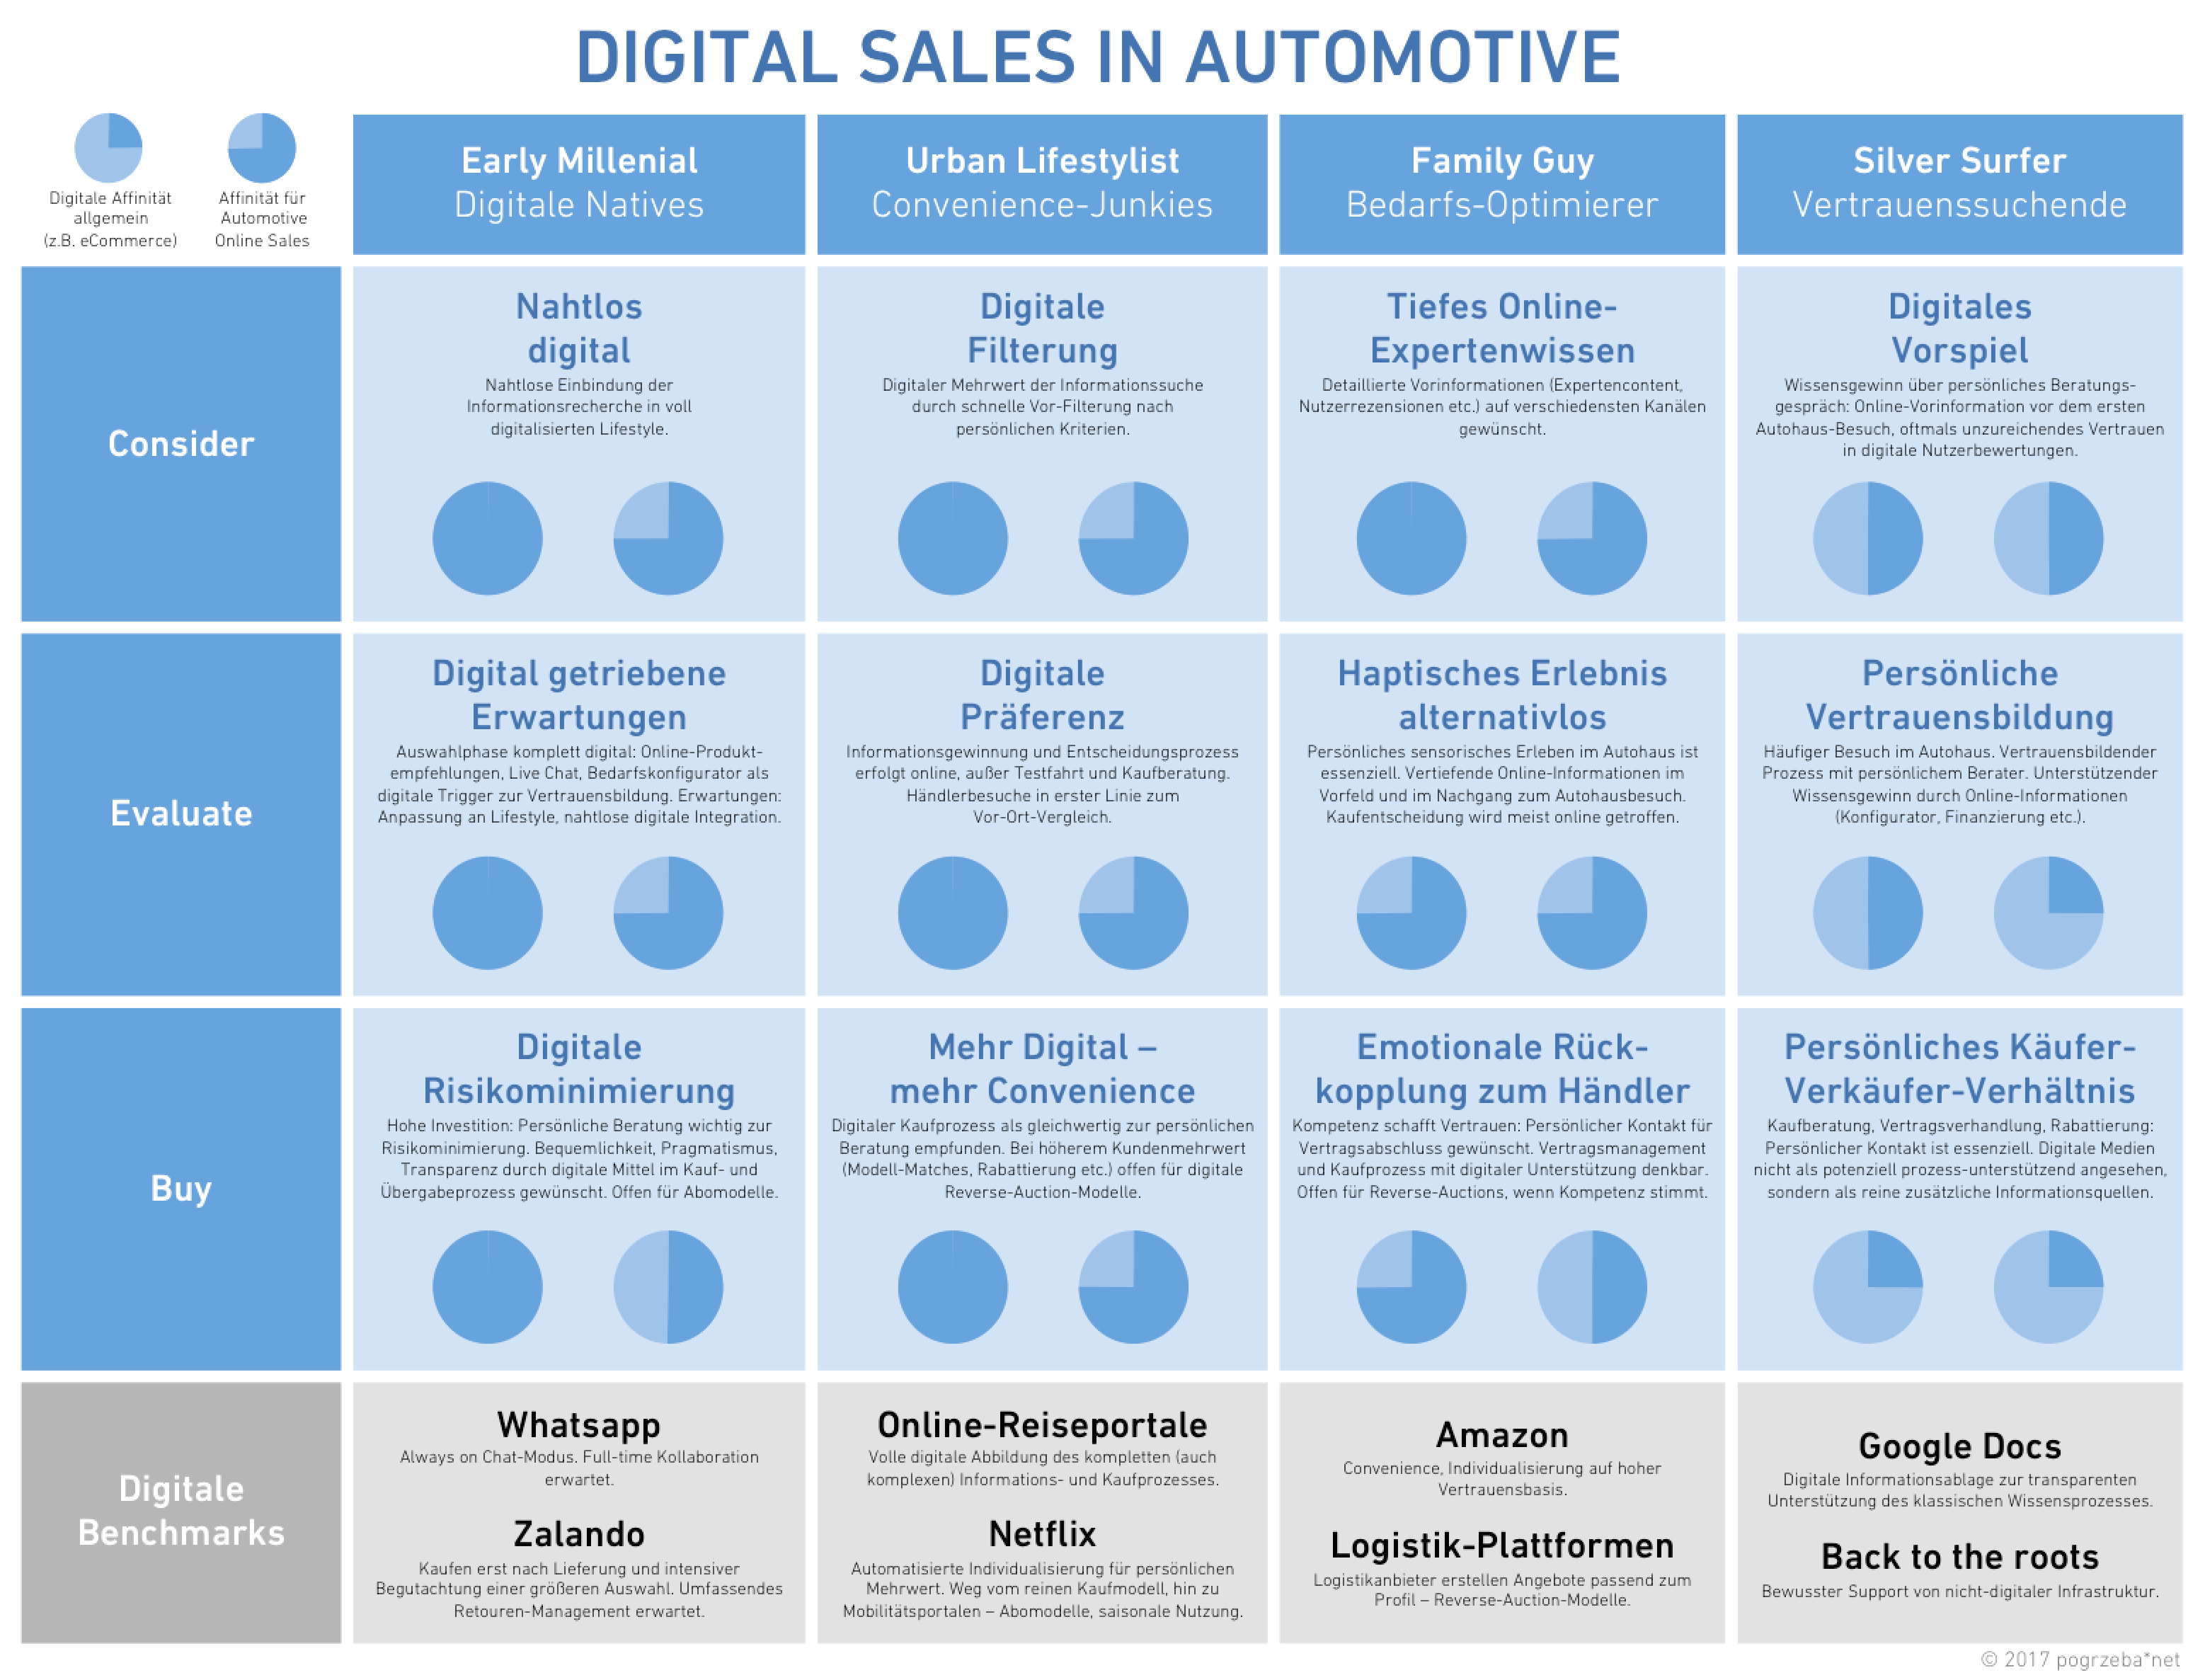 Digital Sales in Automotive